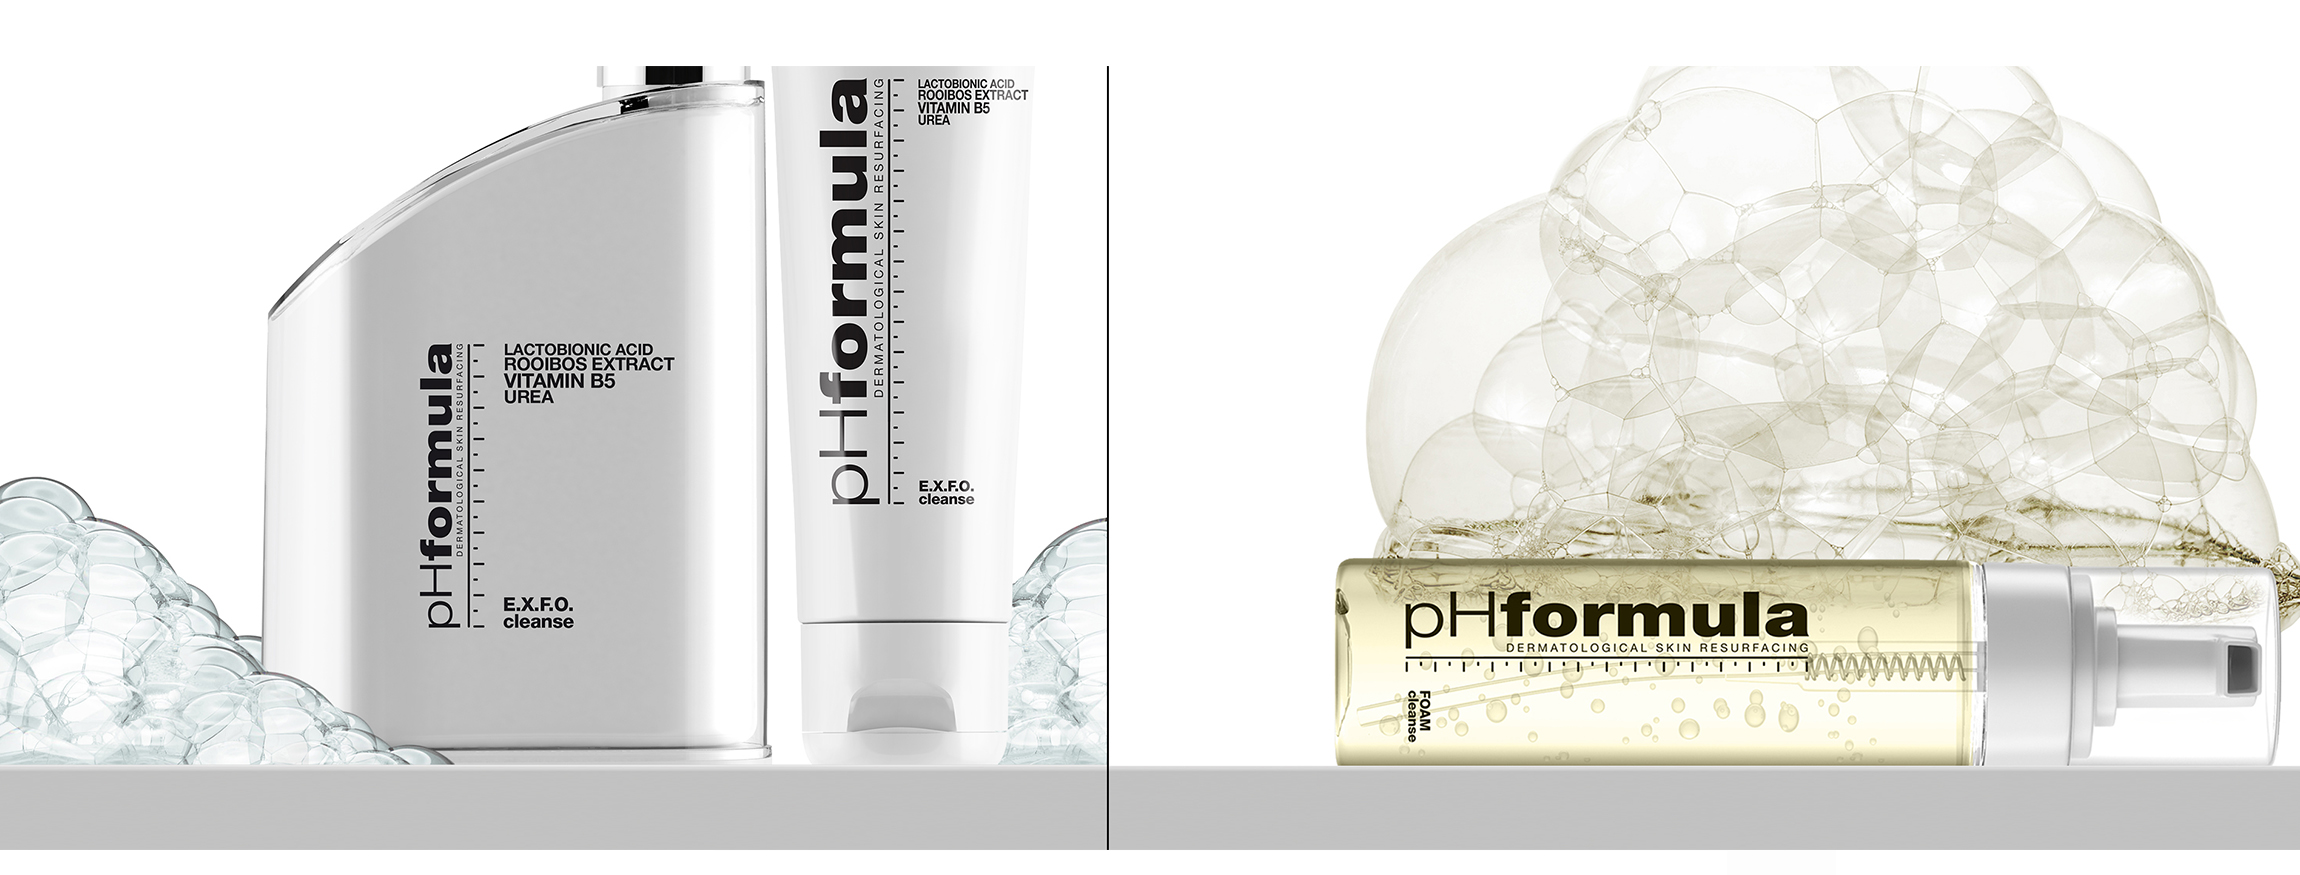 pHformula has the perfect and simple skincare regime for men with very easy steps to follow! : Step 1